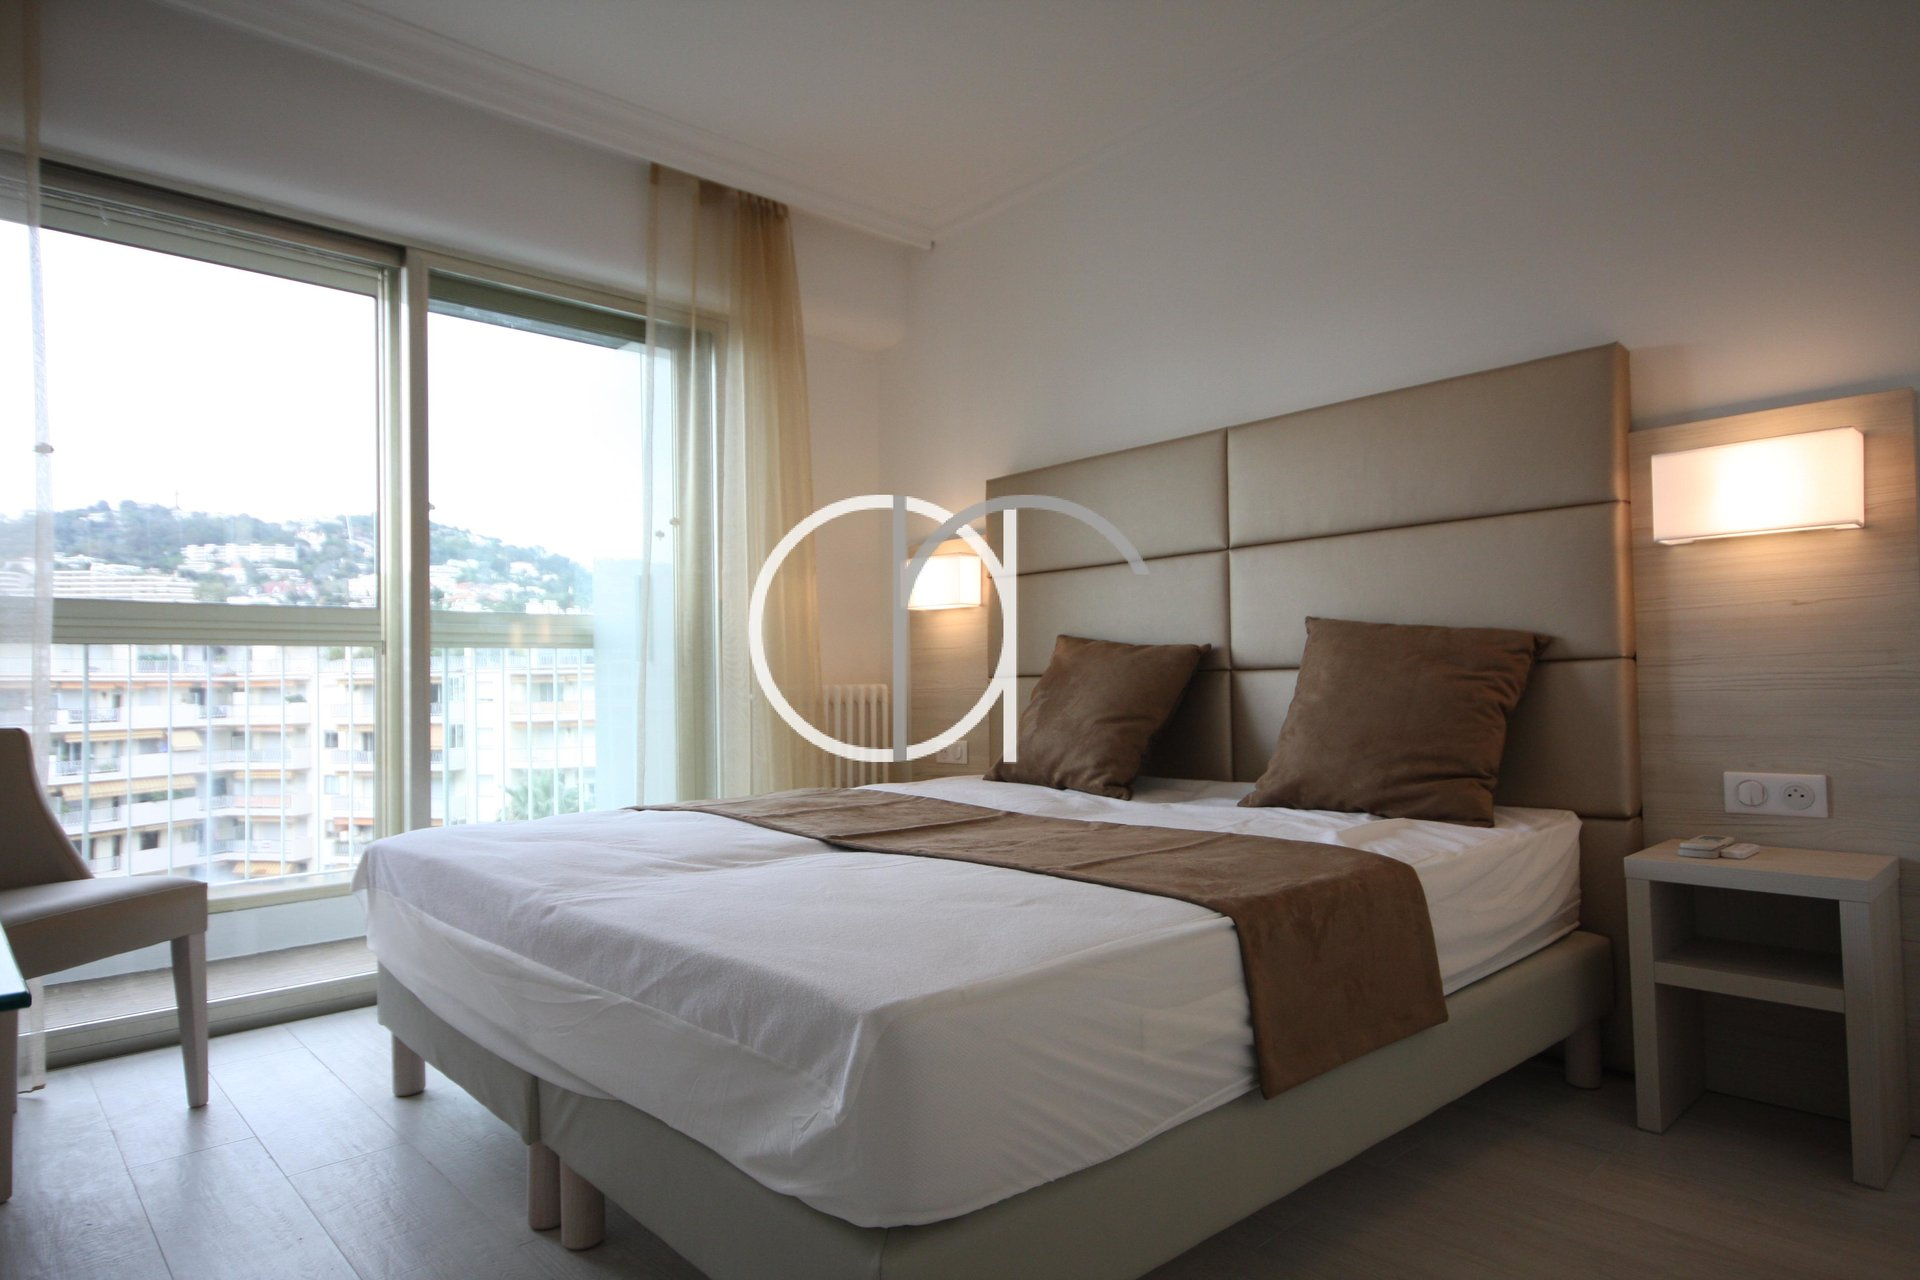 2 bedrooms apartment with sea view